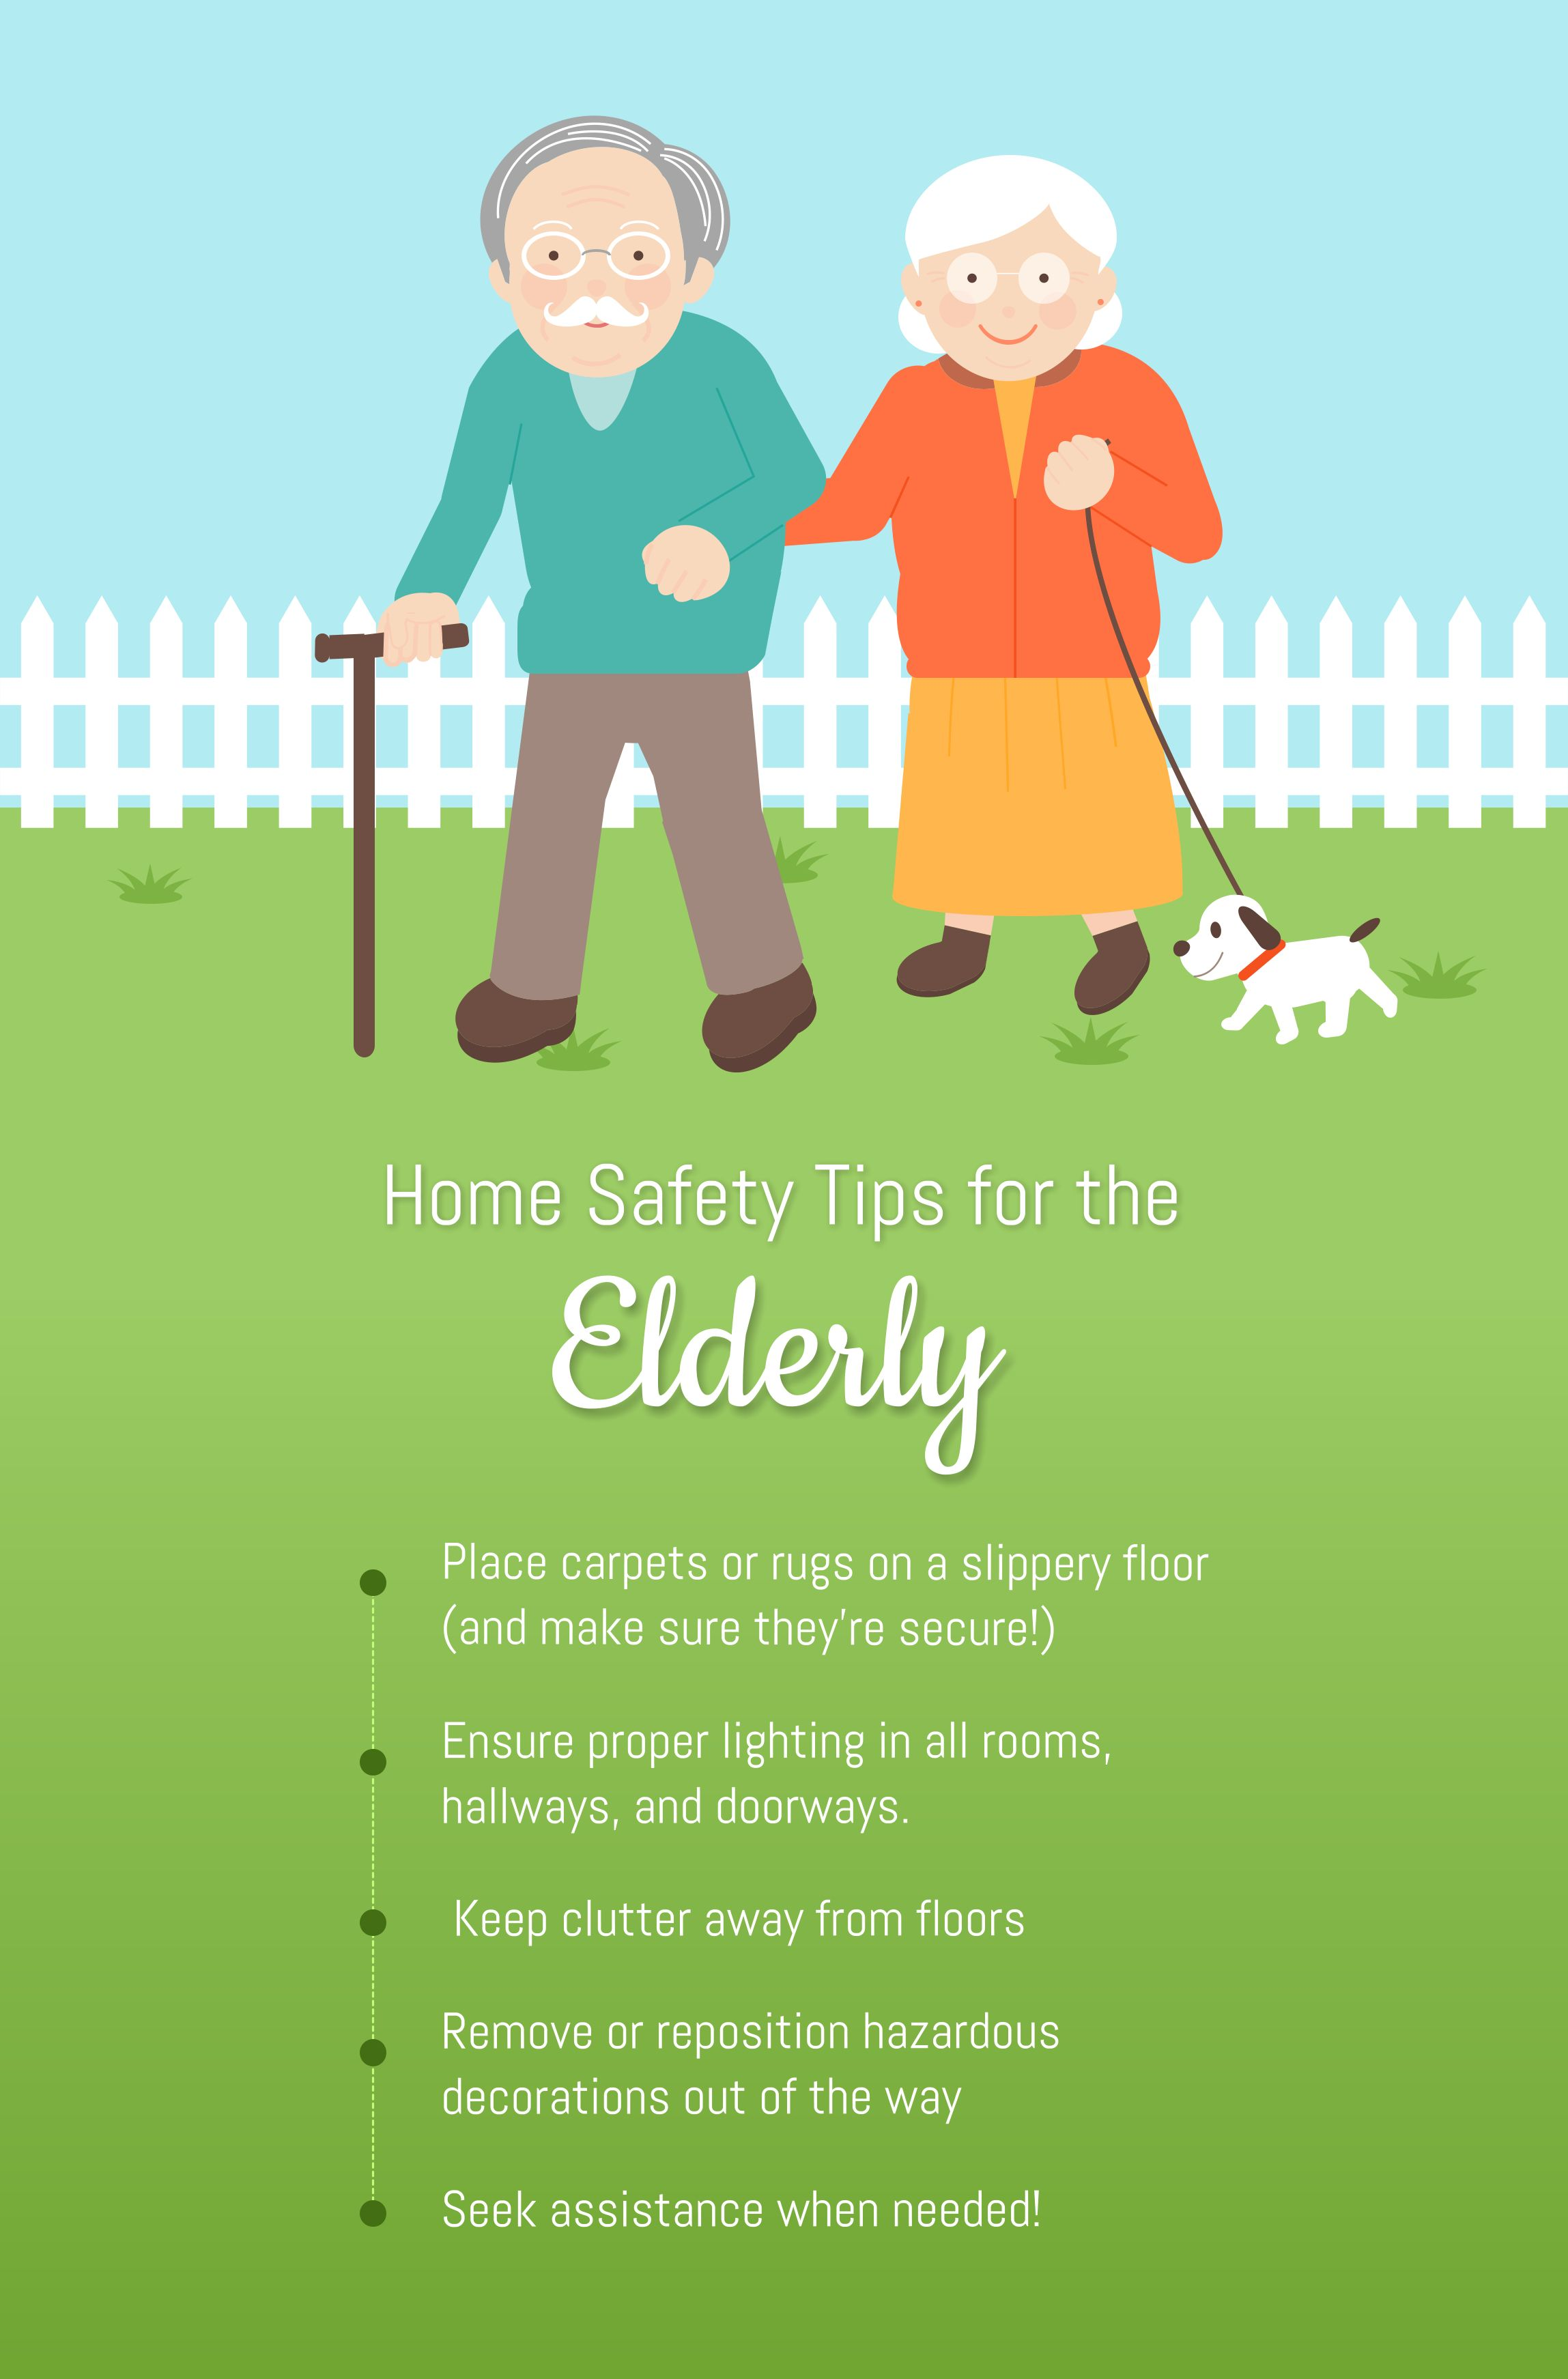 Home Safety Tips for the Elderly Angel Caregivers, Inc